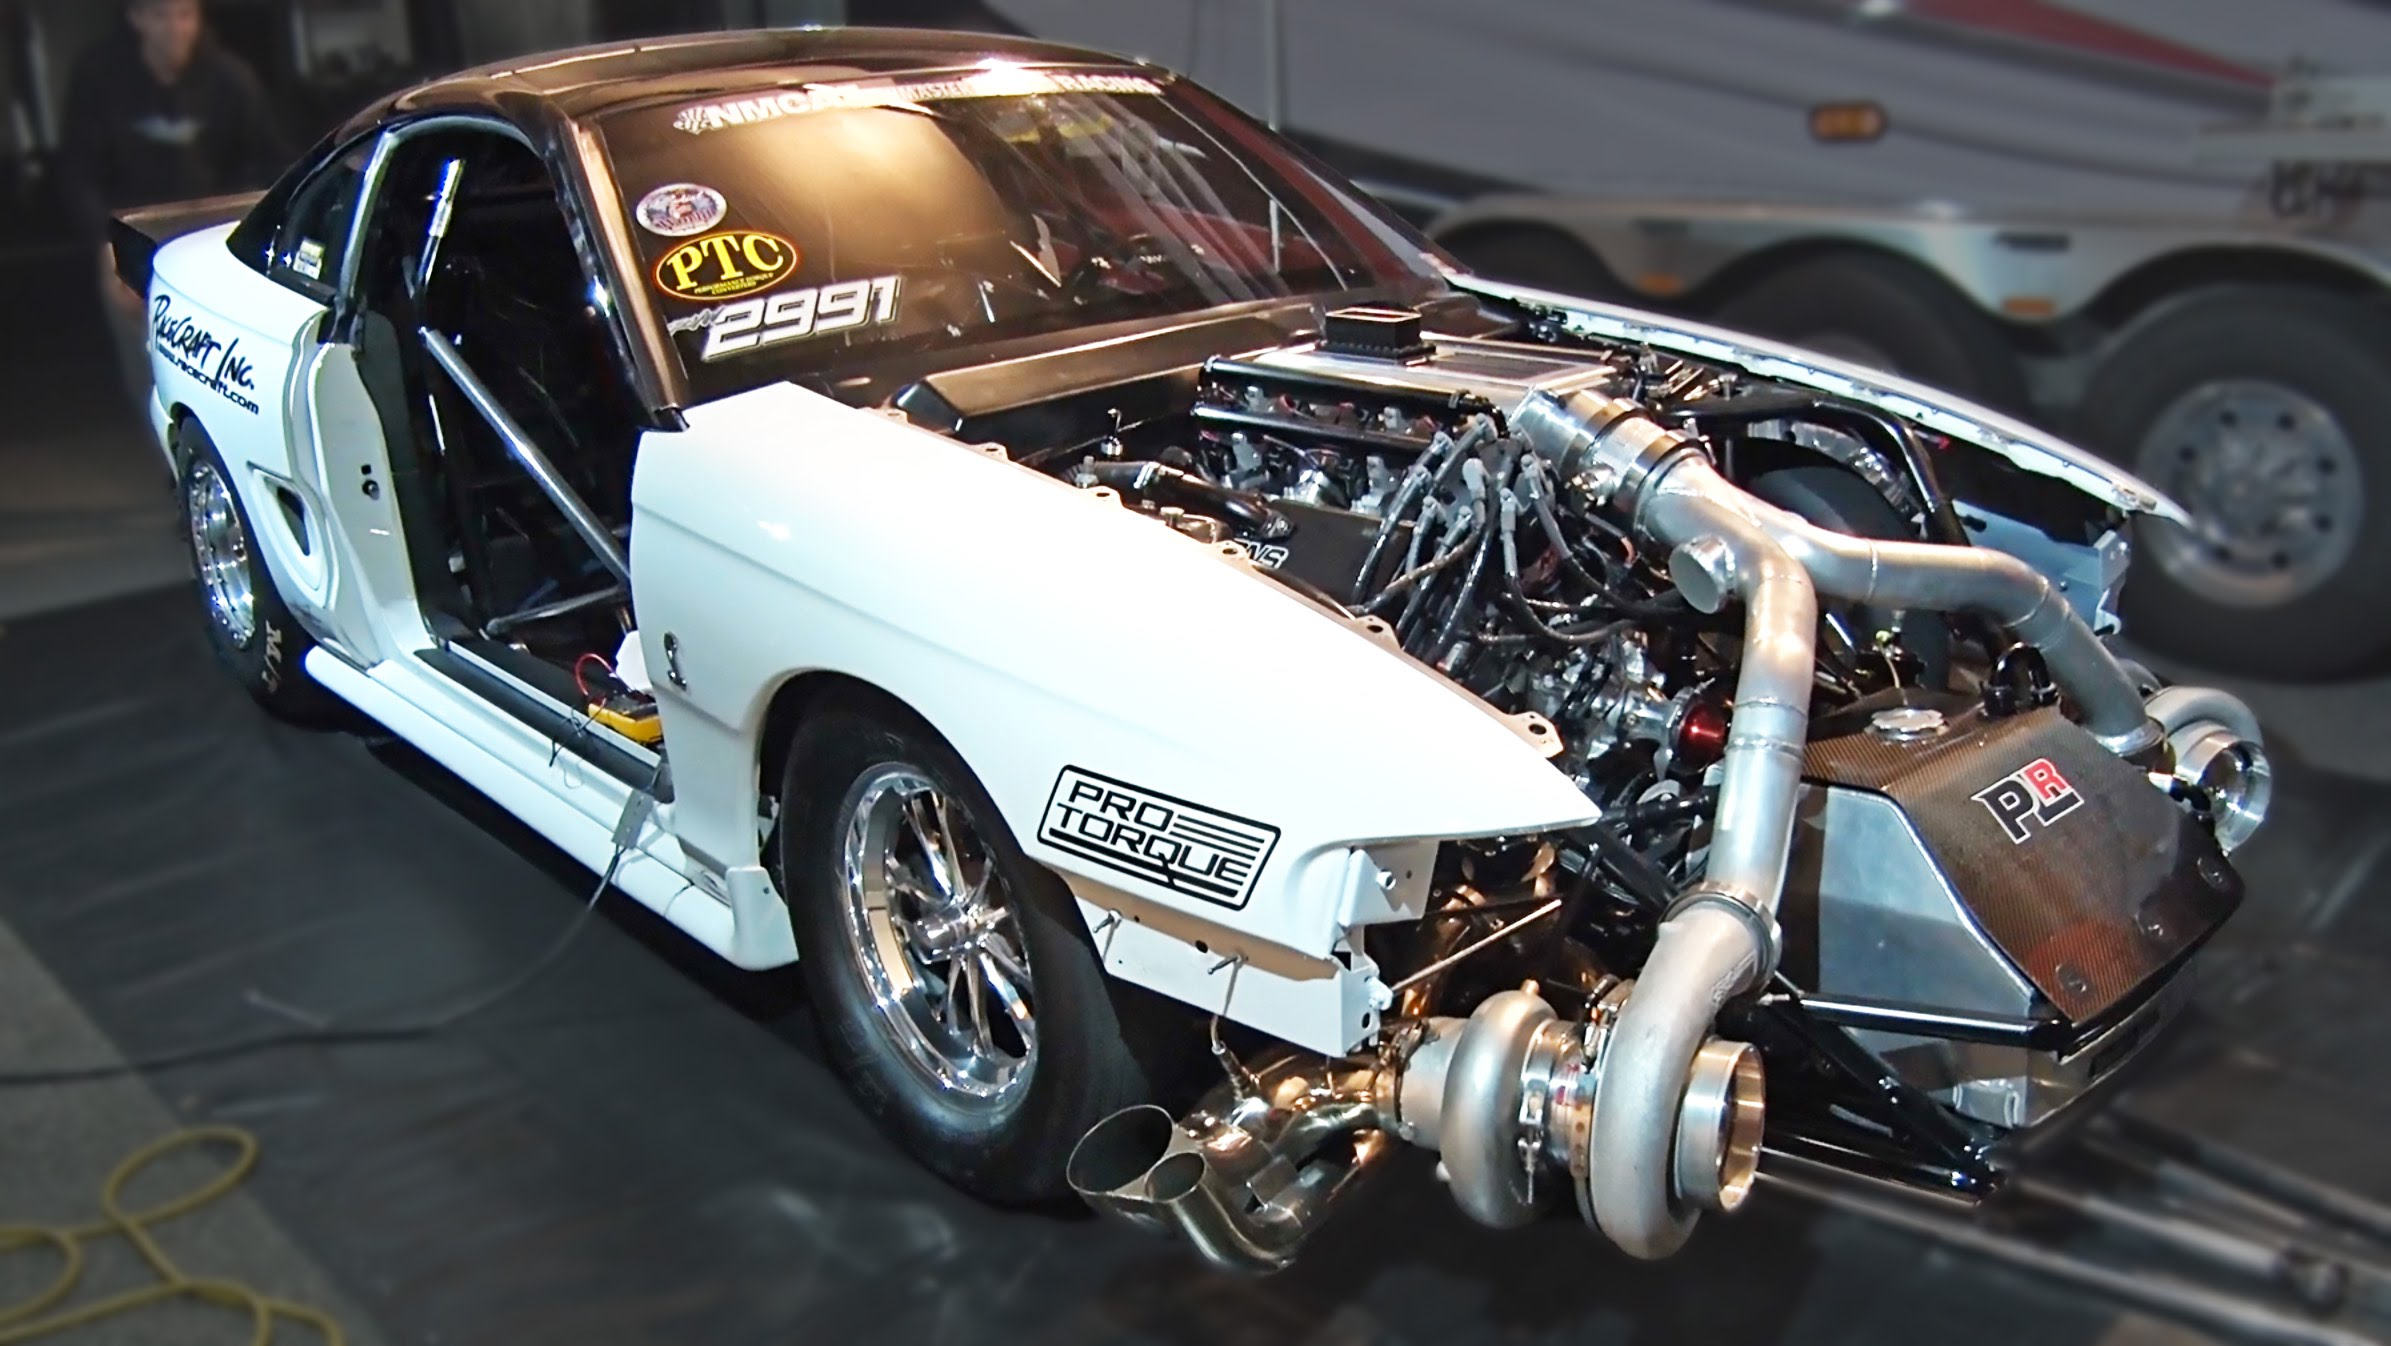 This Twin Turbo Ford Mustang With INSANE 102mm Turbochargers